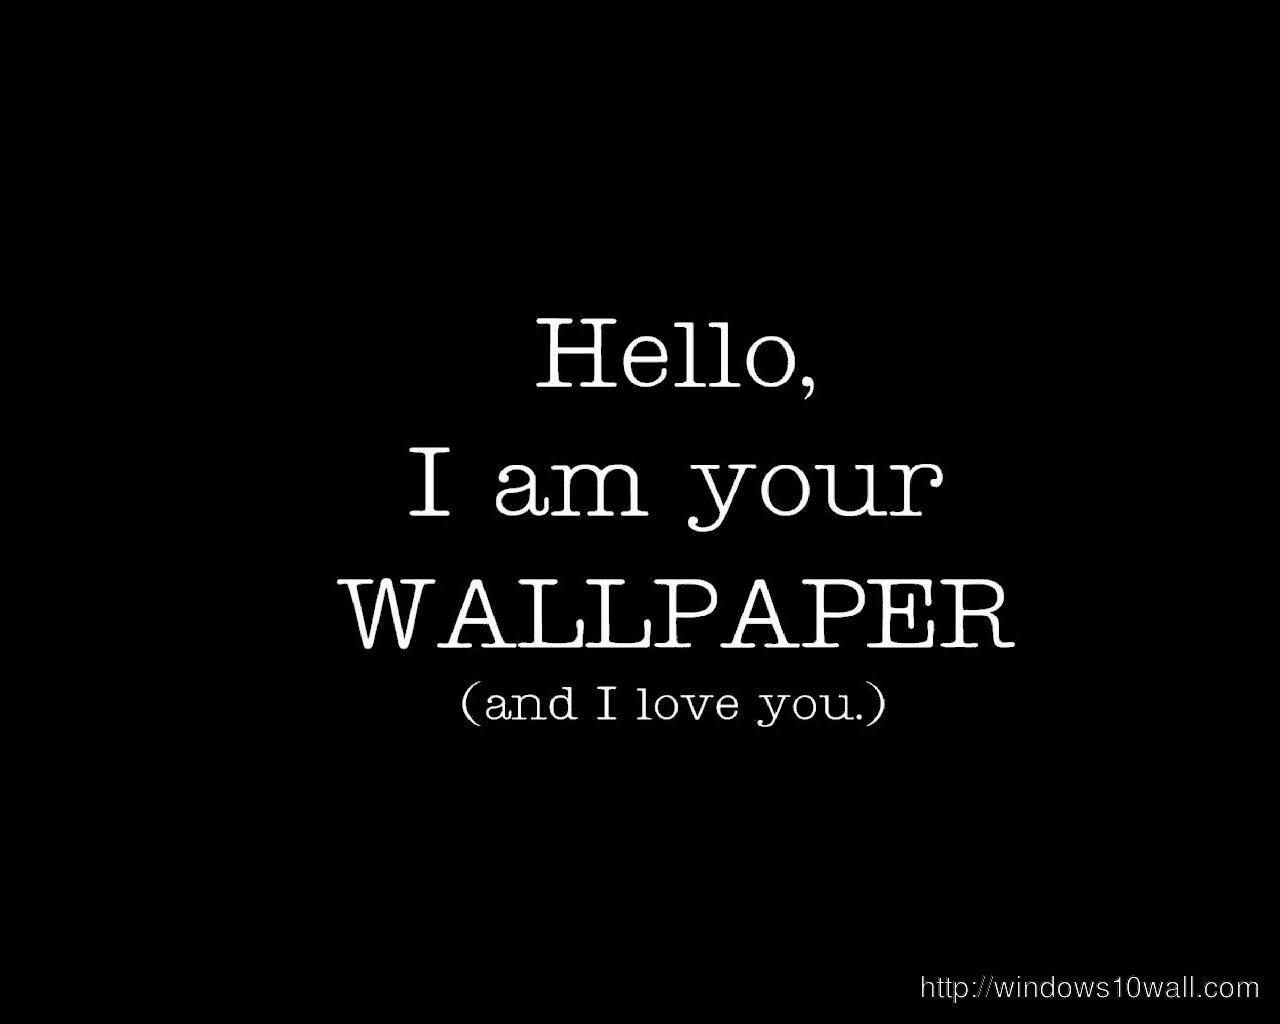 i-am-your-wallpaper-funny